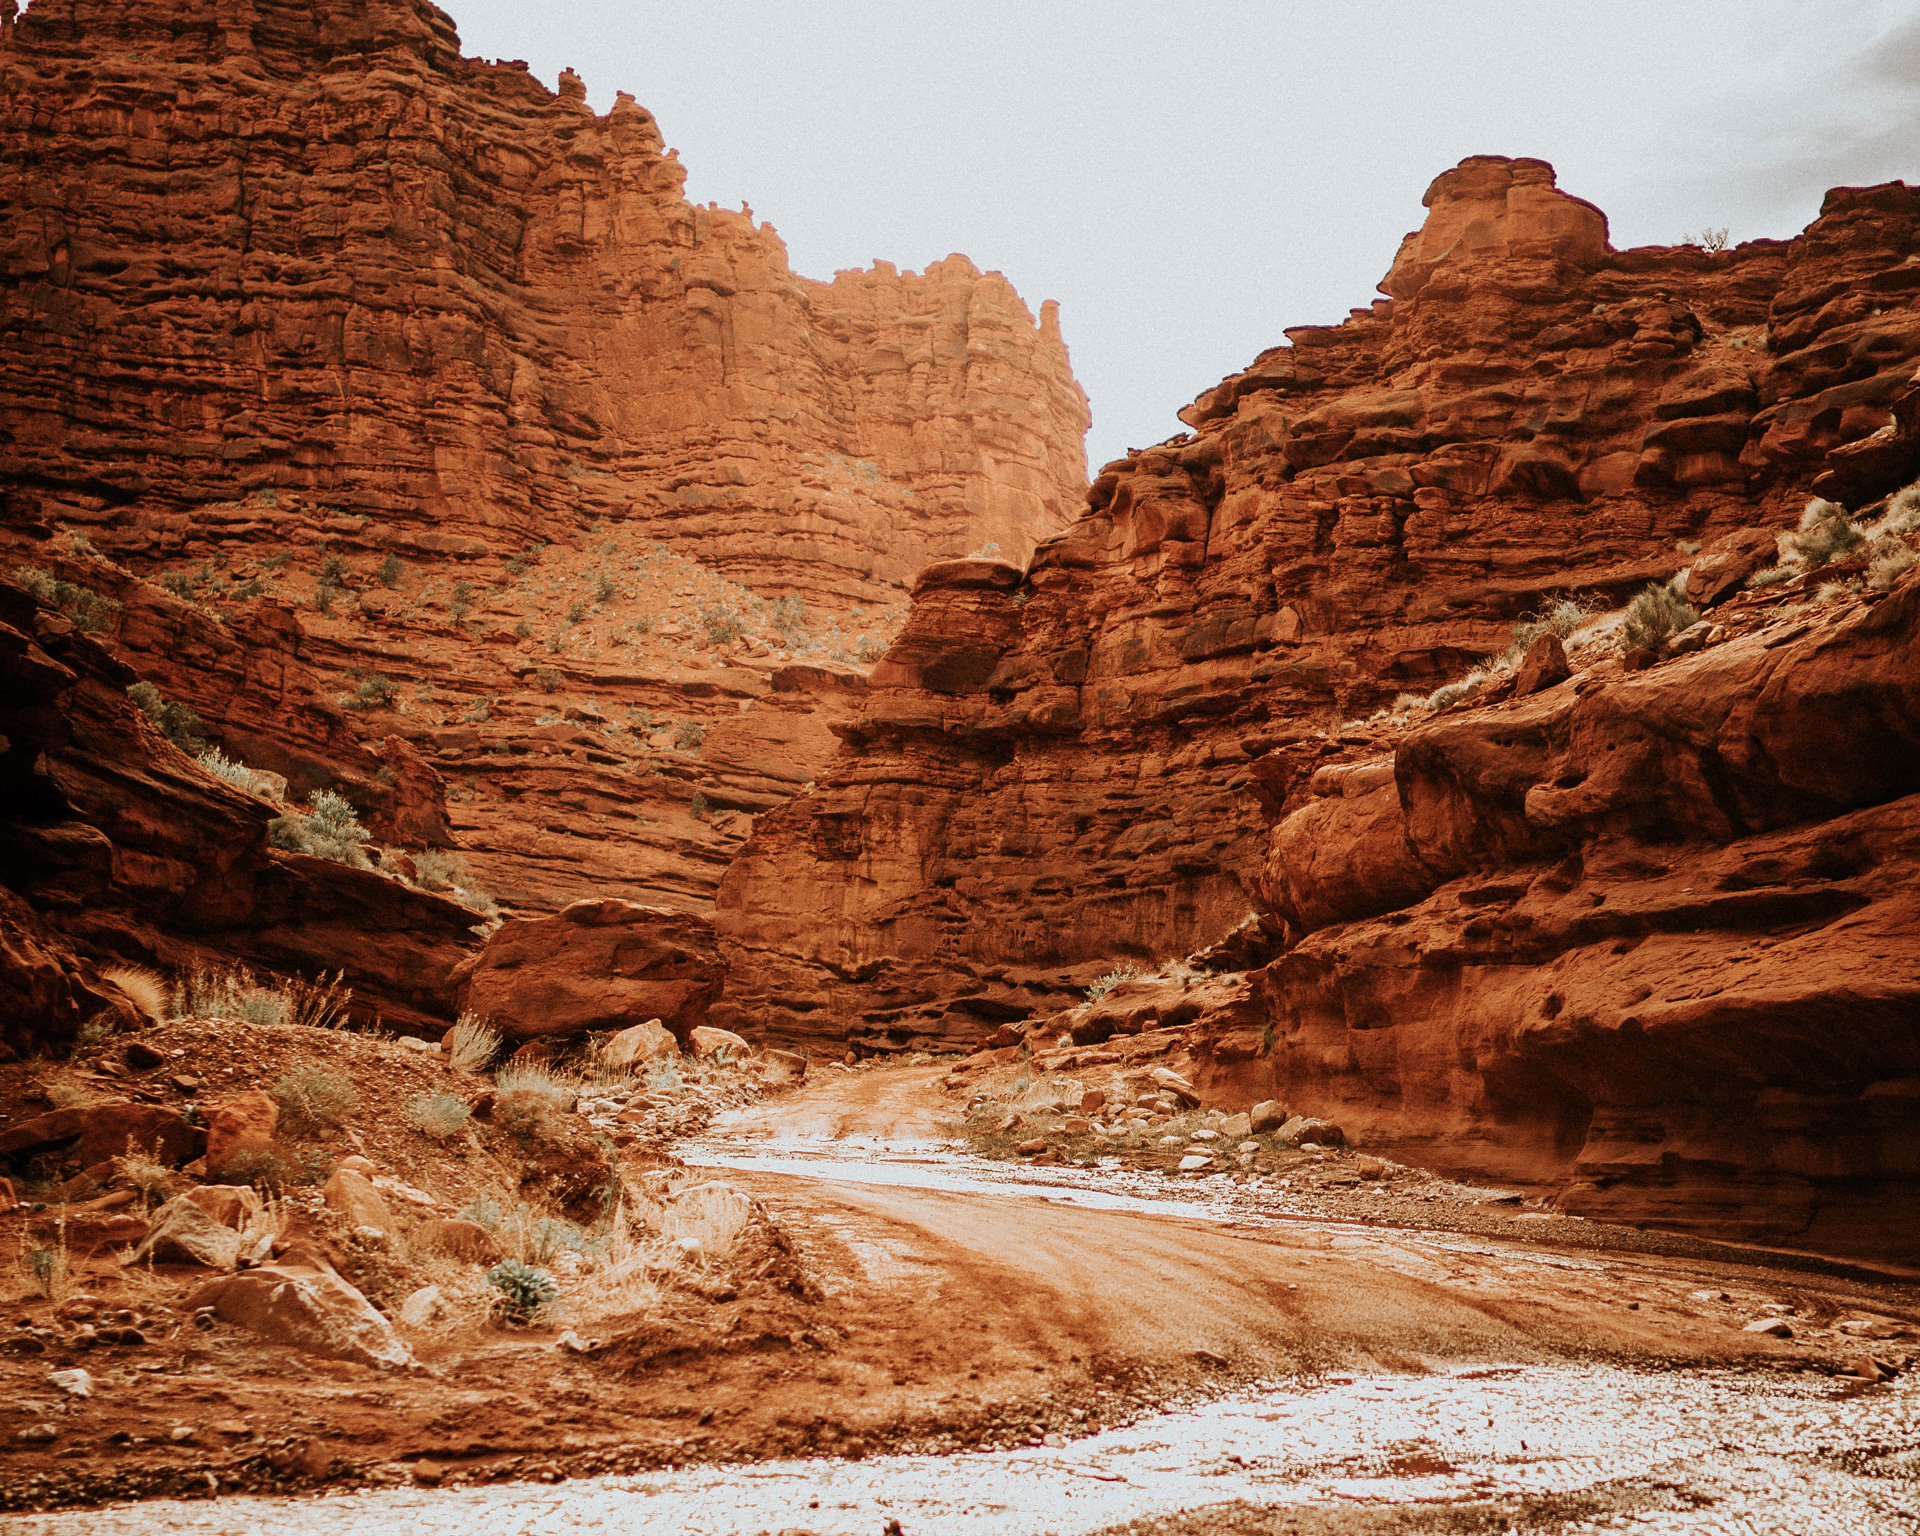 Onion Creek Off Road Trail - Moab Utah - ly and Limitless on arches national park utah map, moab blm map, moab town map, johnson canyon st. george utah map, zion utah map, altamont utah to vernal utah map, moab desert map, transamerica trail map, moab colorado river map, moab middle east map,